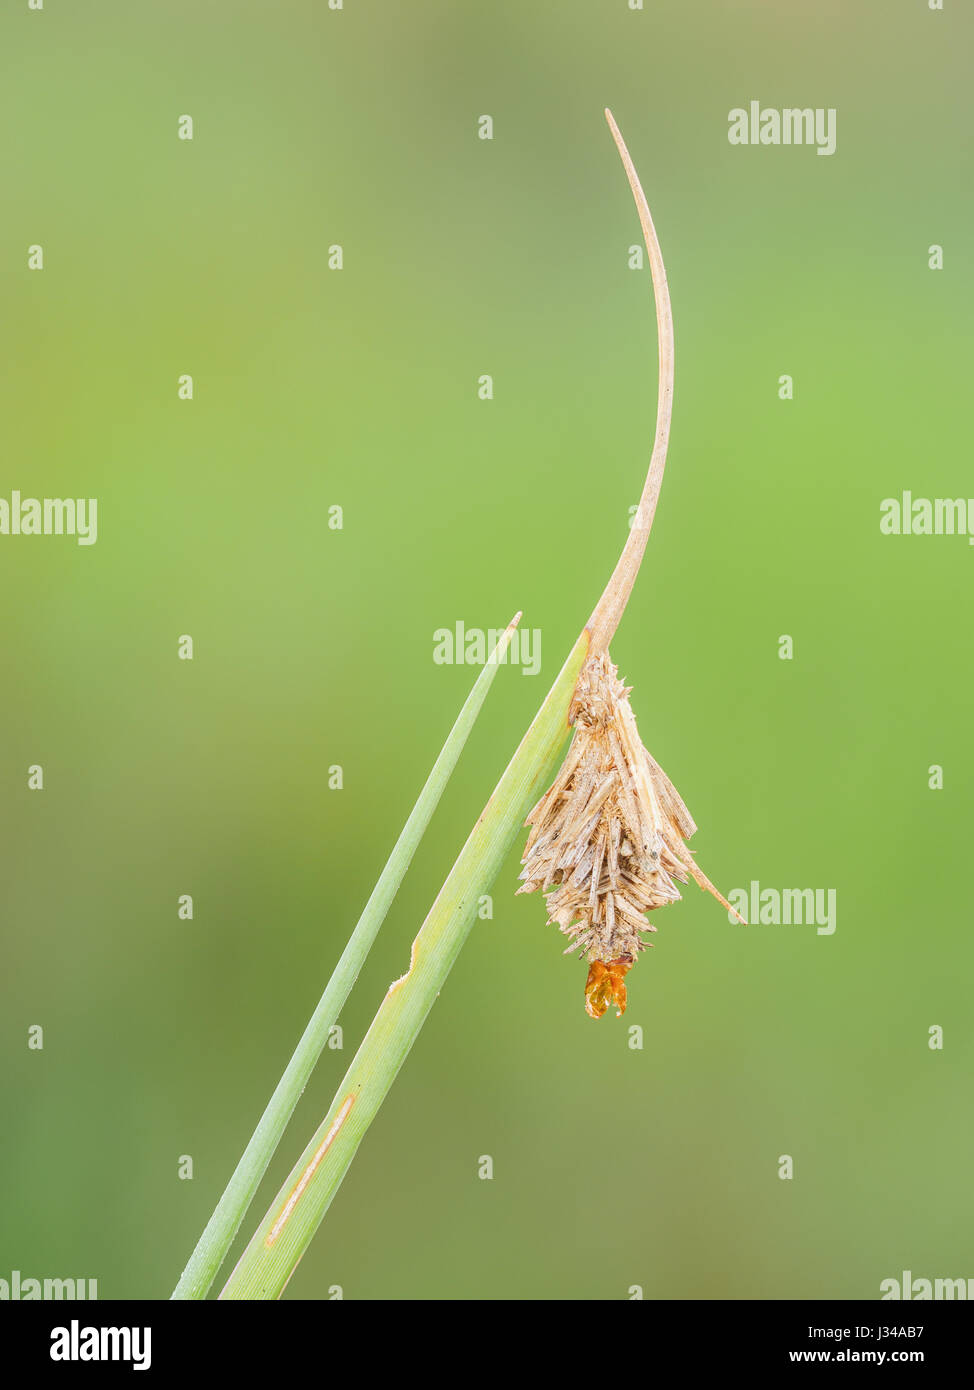 An empty Bagworm Moth (Psychidae) larval case hangs from vegetation. - Stock Image